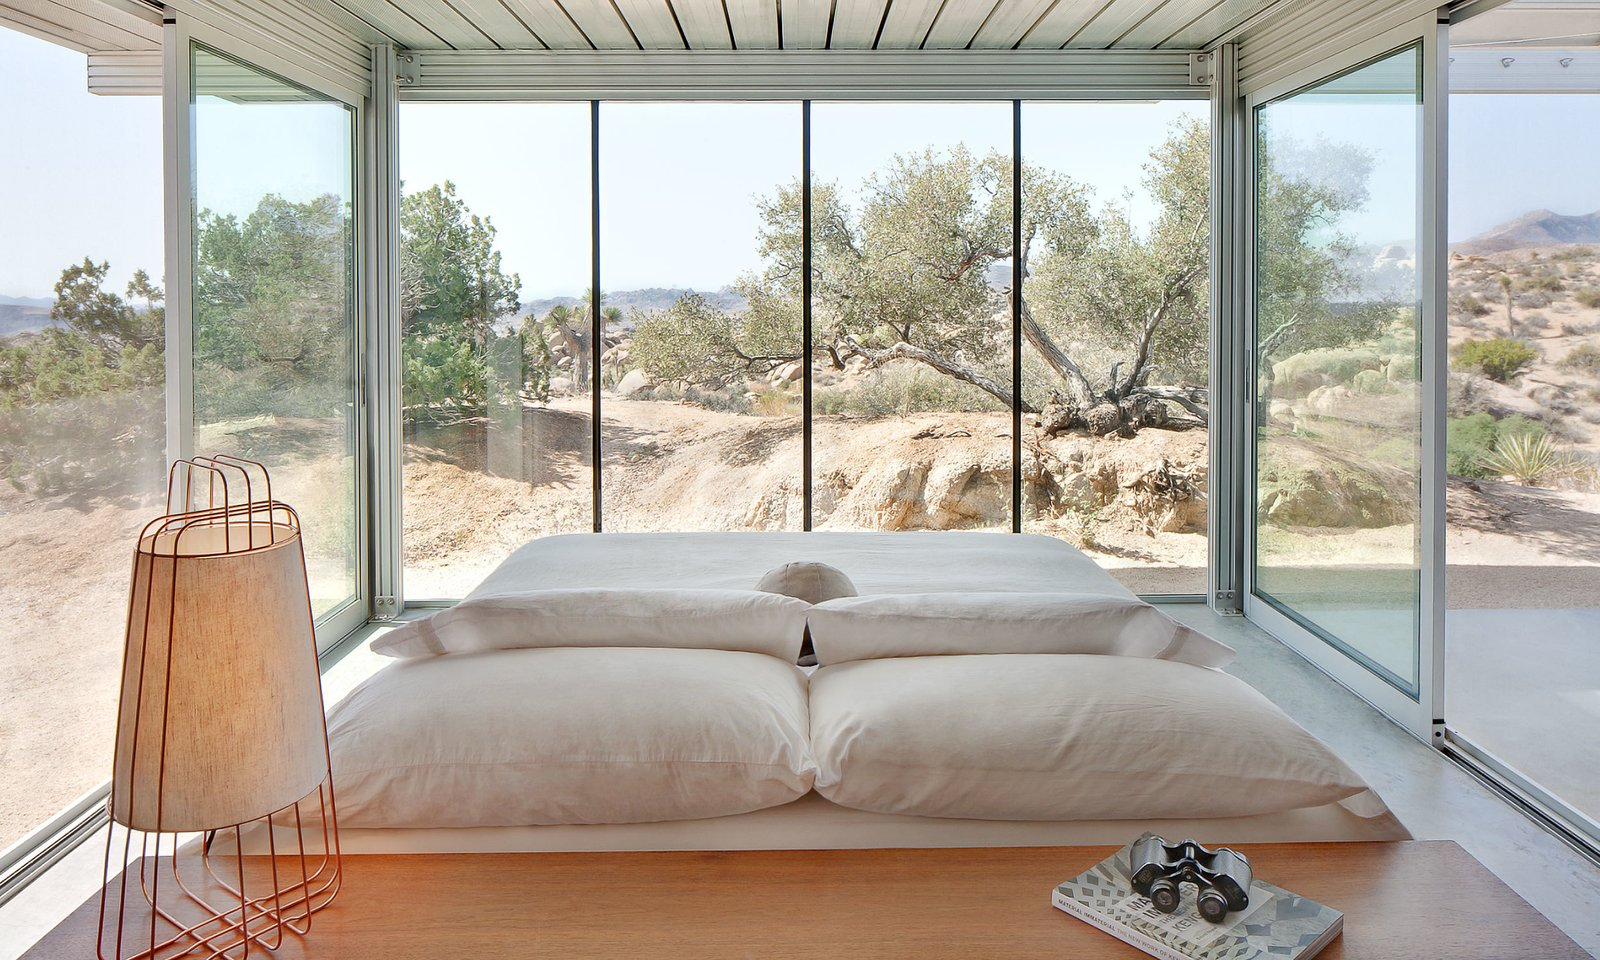 Bedroom and Bed Off The Grid ItHouse // Taalman & Koch  Best Photos